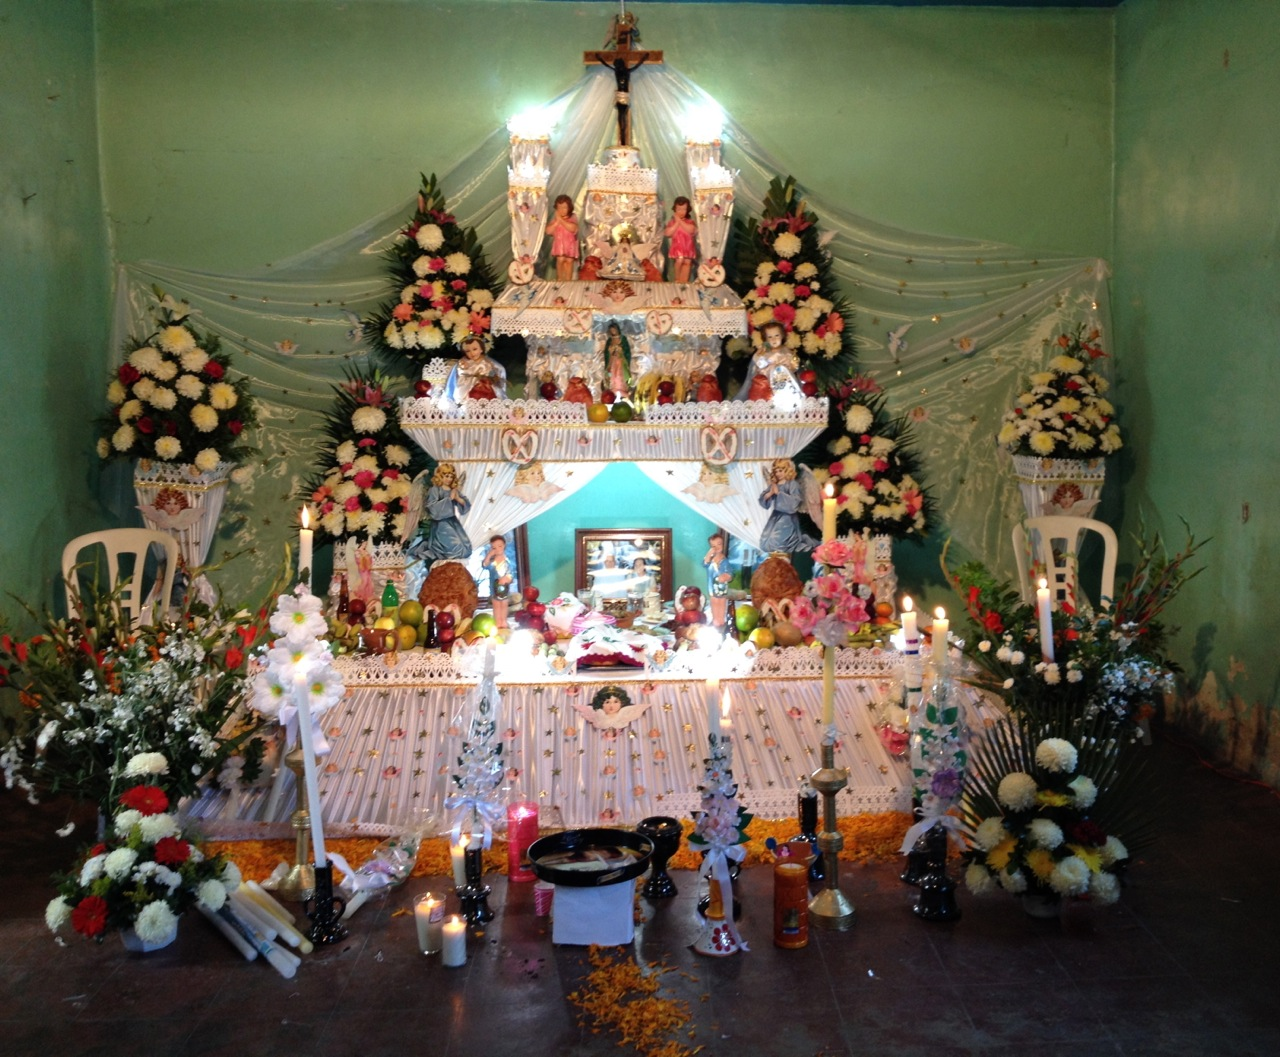 Day Of The Dead Altars In Atlixco And Huaquechula Puebla